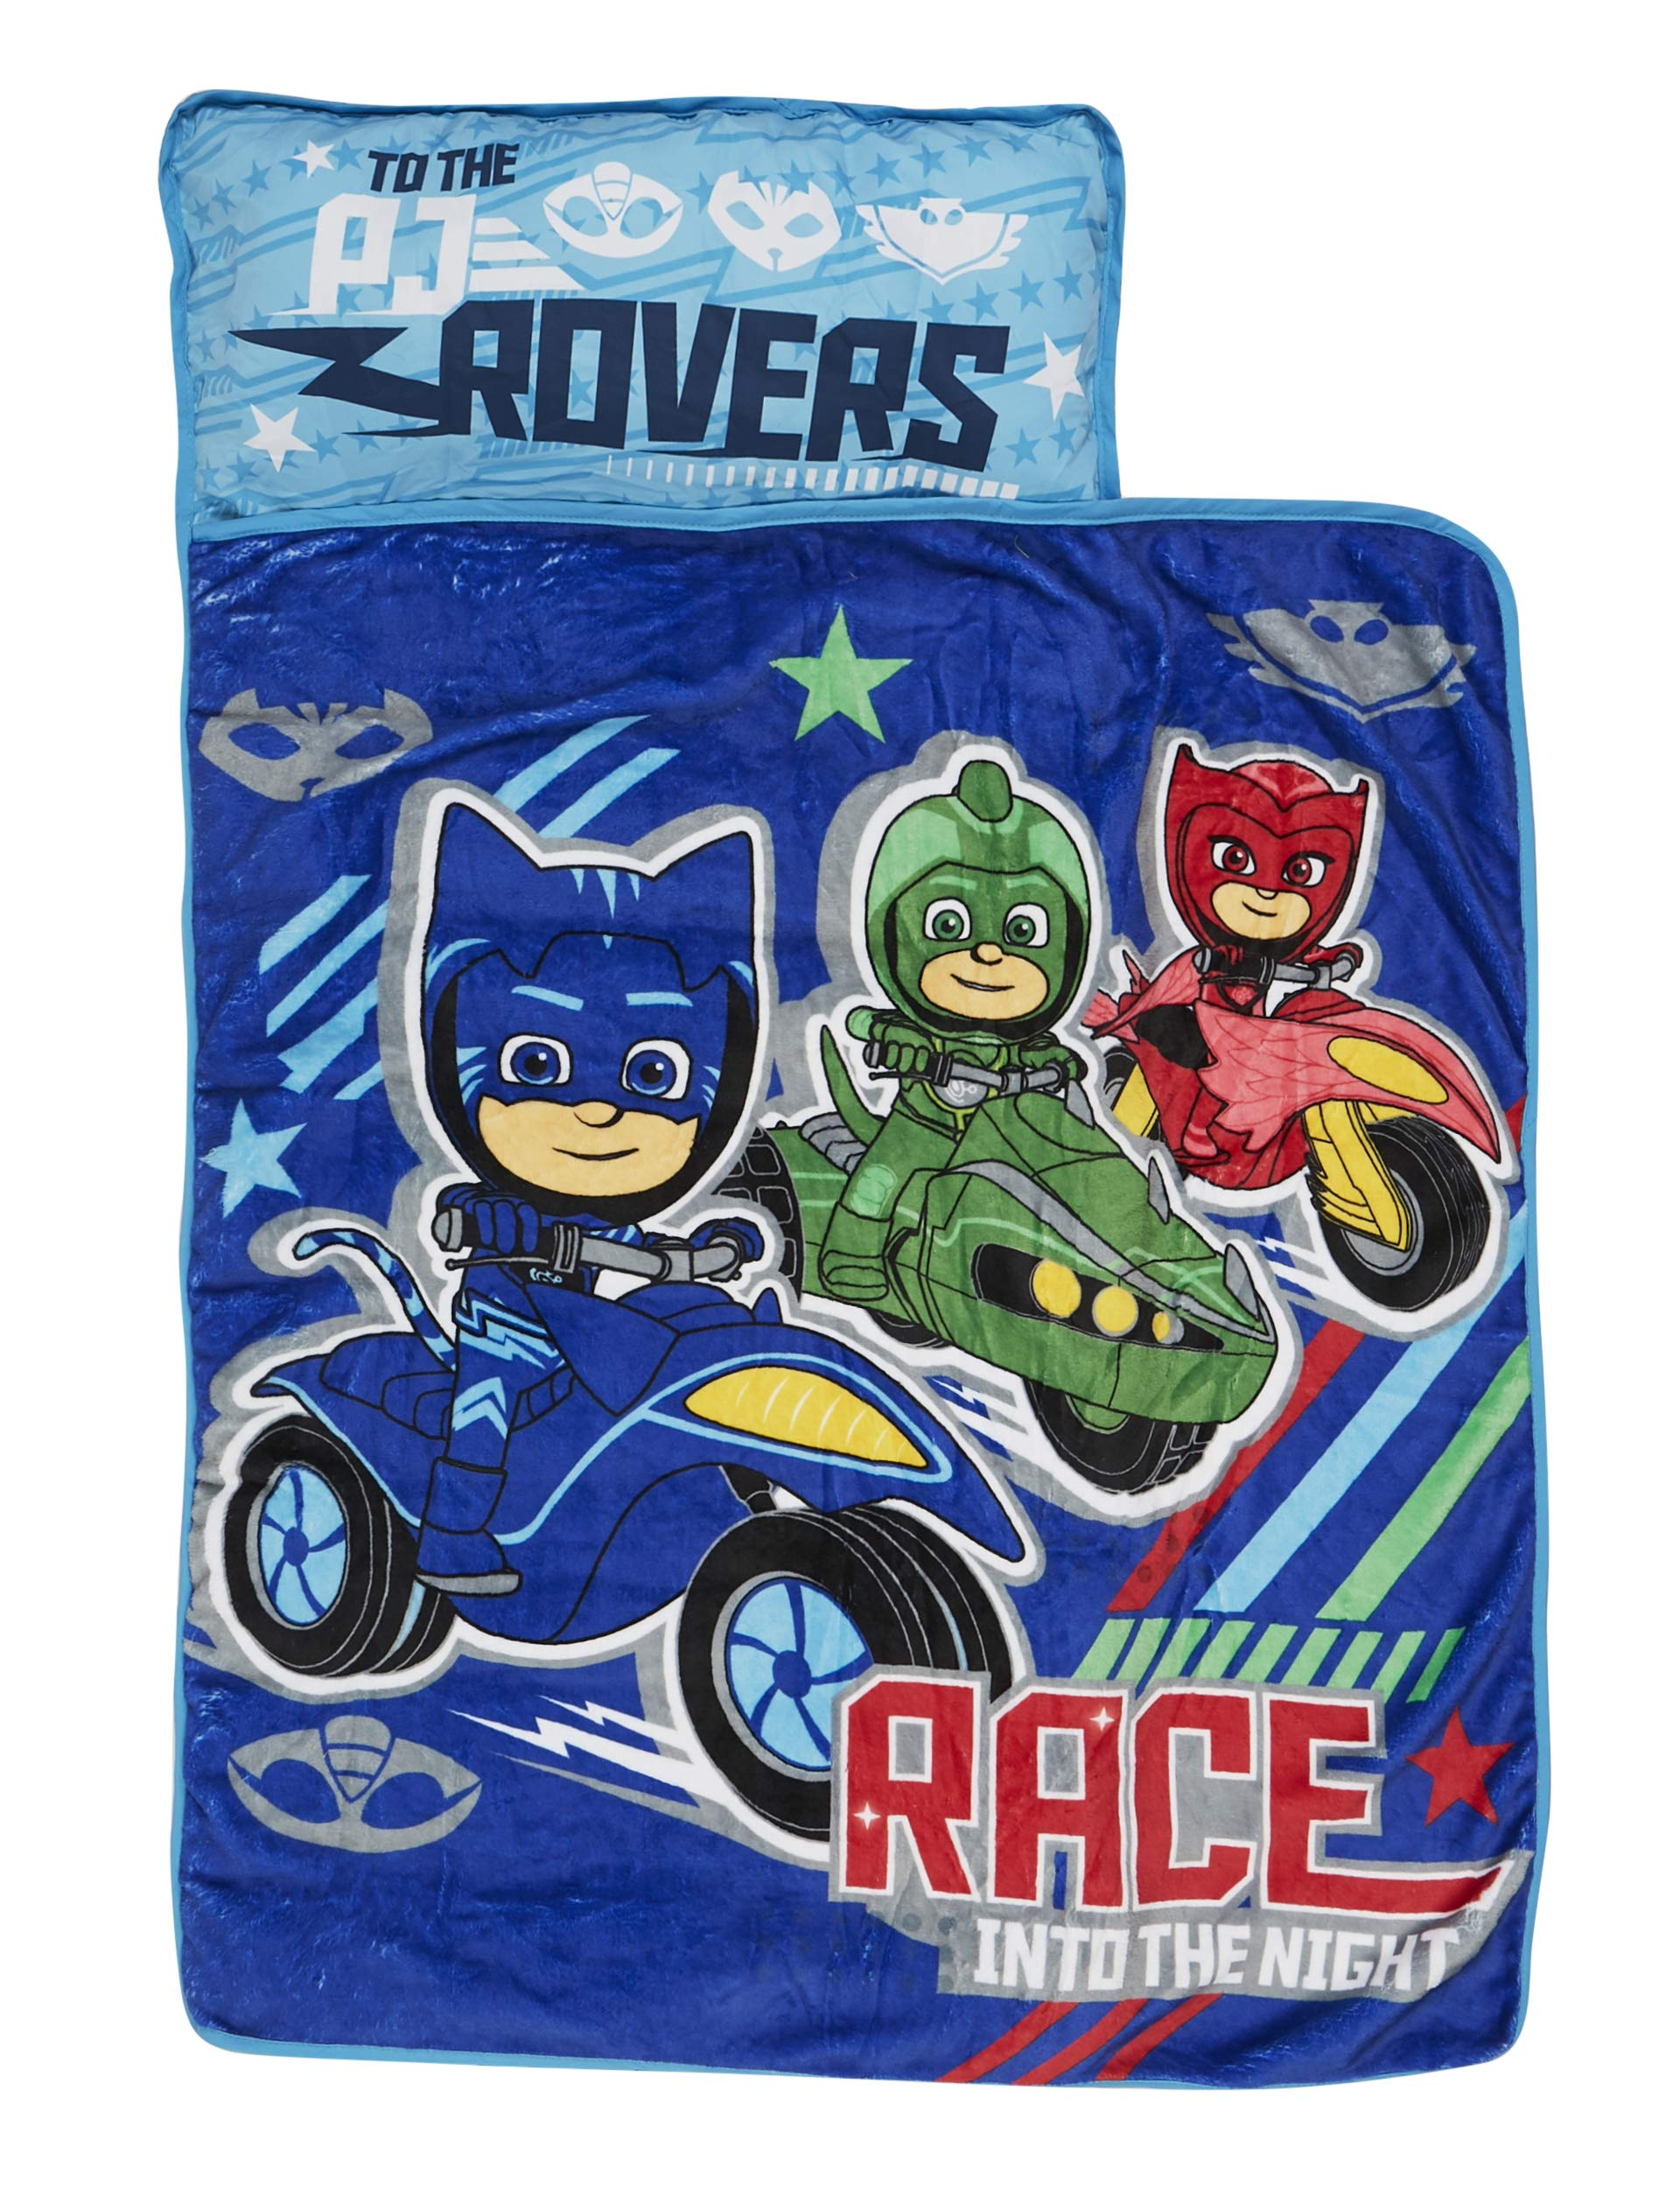 PJ Masks Race Into The Night Nap Mat - Includes Pillow and Fleece Blanket - Great for Boys and Girls Napping at Daycare, Preschool, Or Kindergarten - Fits Sleeping Toddlers and Young Children by PJ Masks